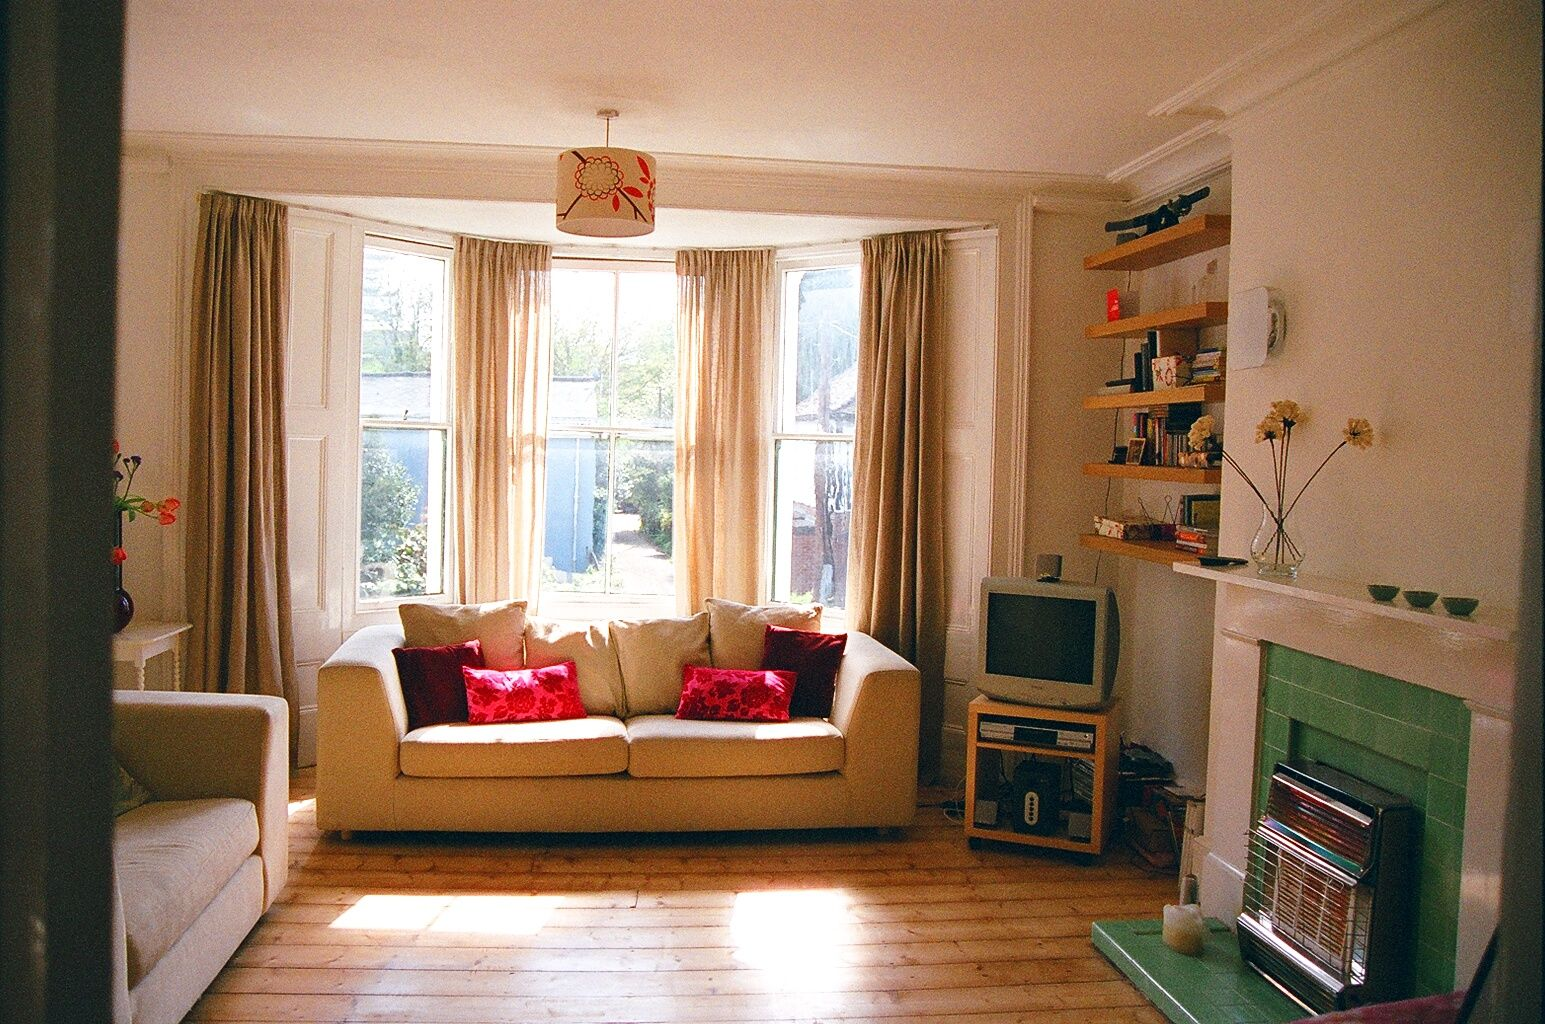 Decorating The Small Bay Window In The Living Room Google Search